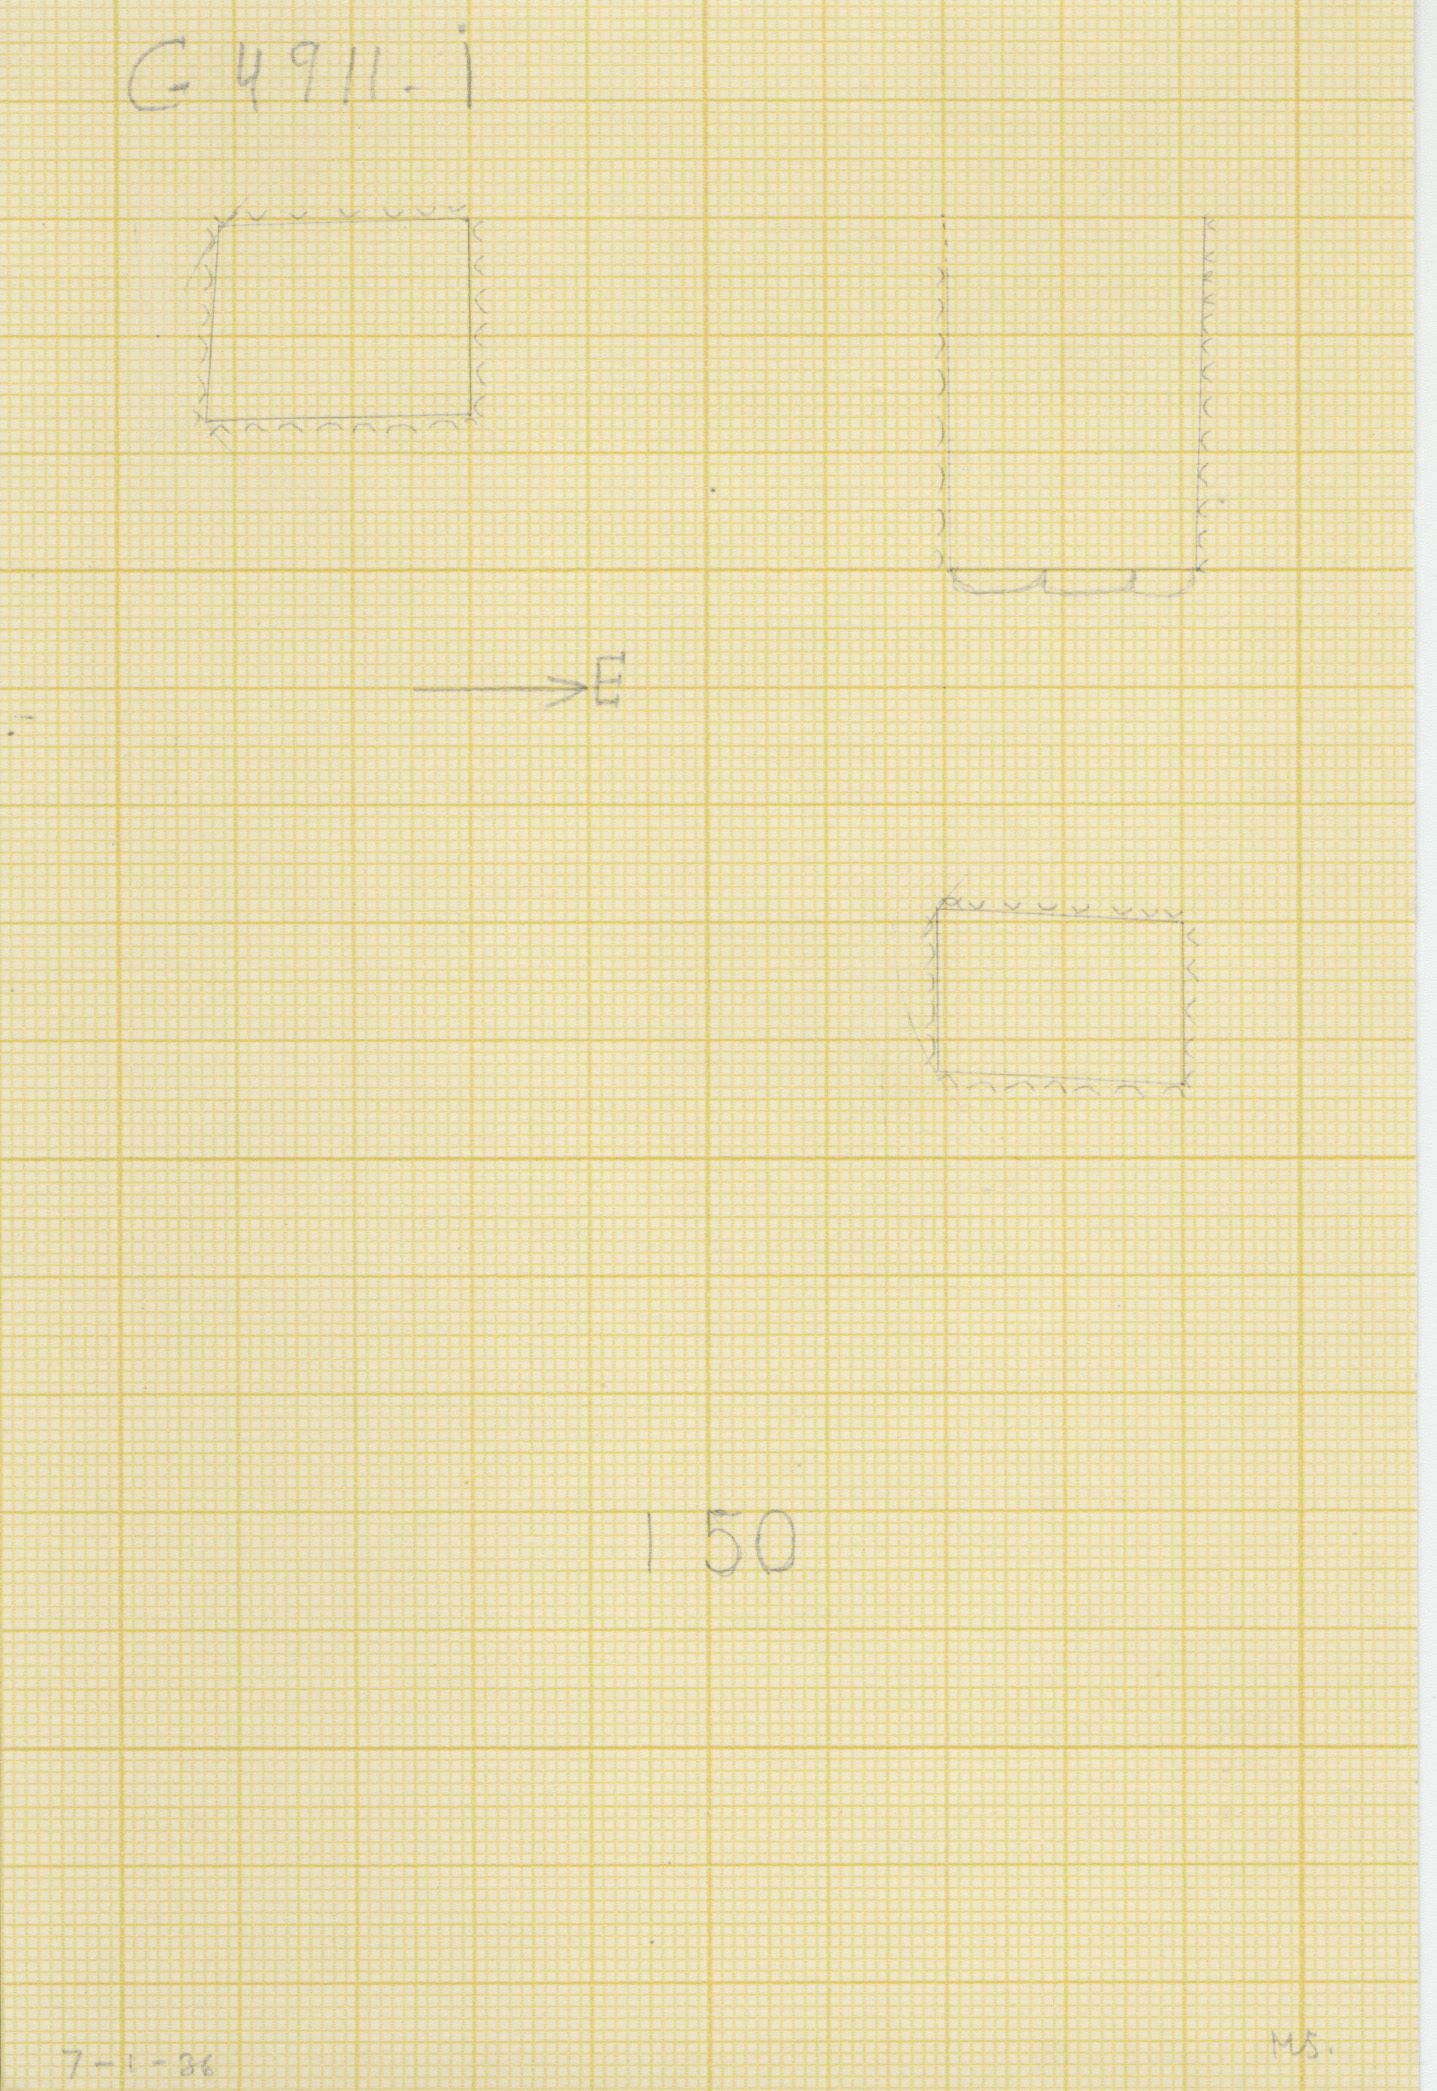 Maps and plans: G 4911, Shaft I